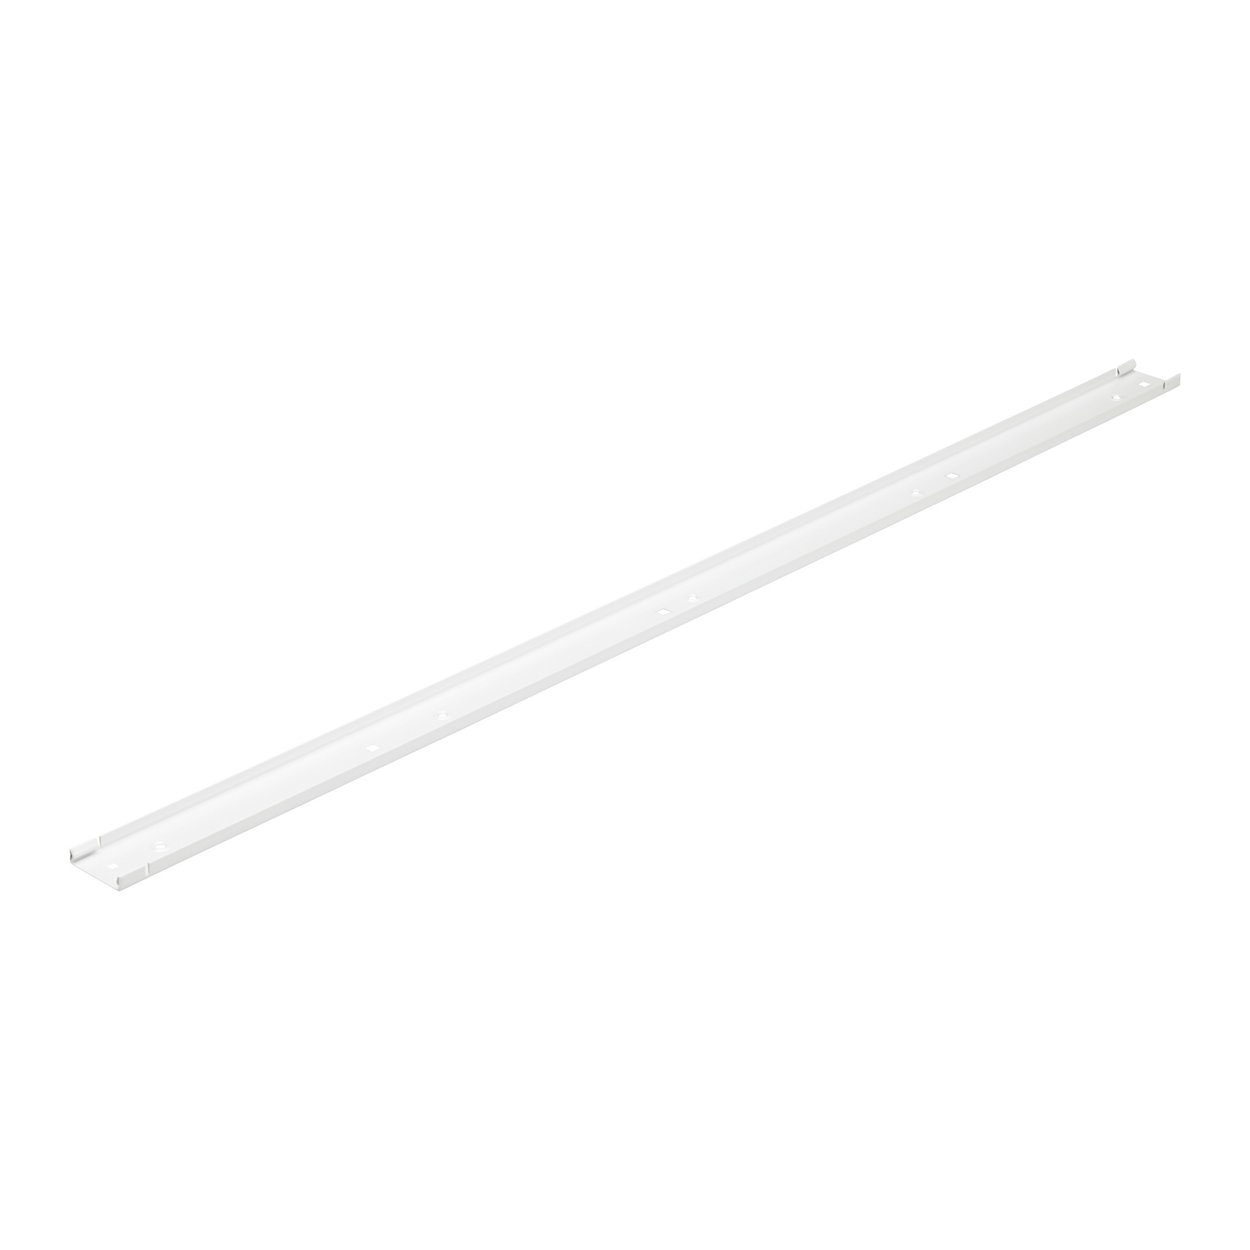 eW Profile Powercore – Under-cabinet white light LED fixture with an ultra low profile